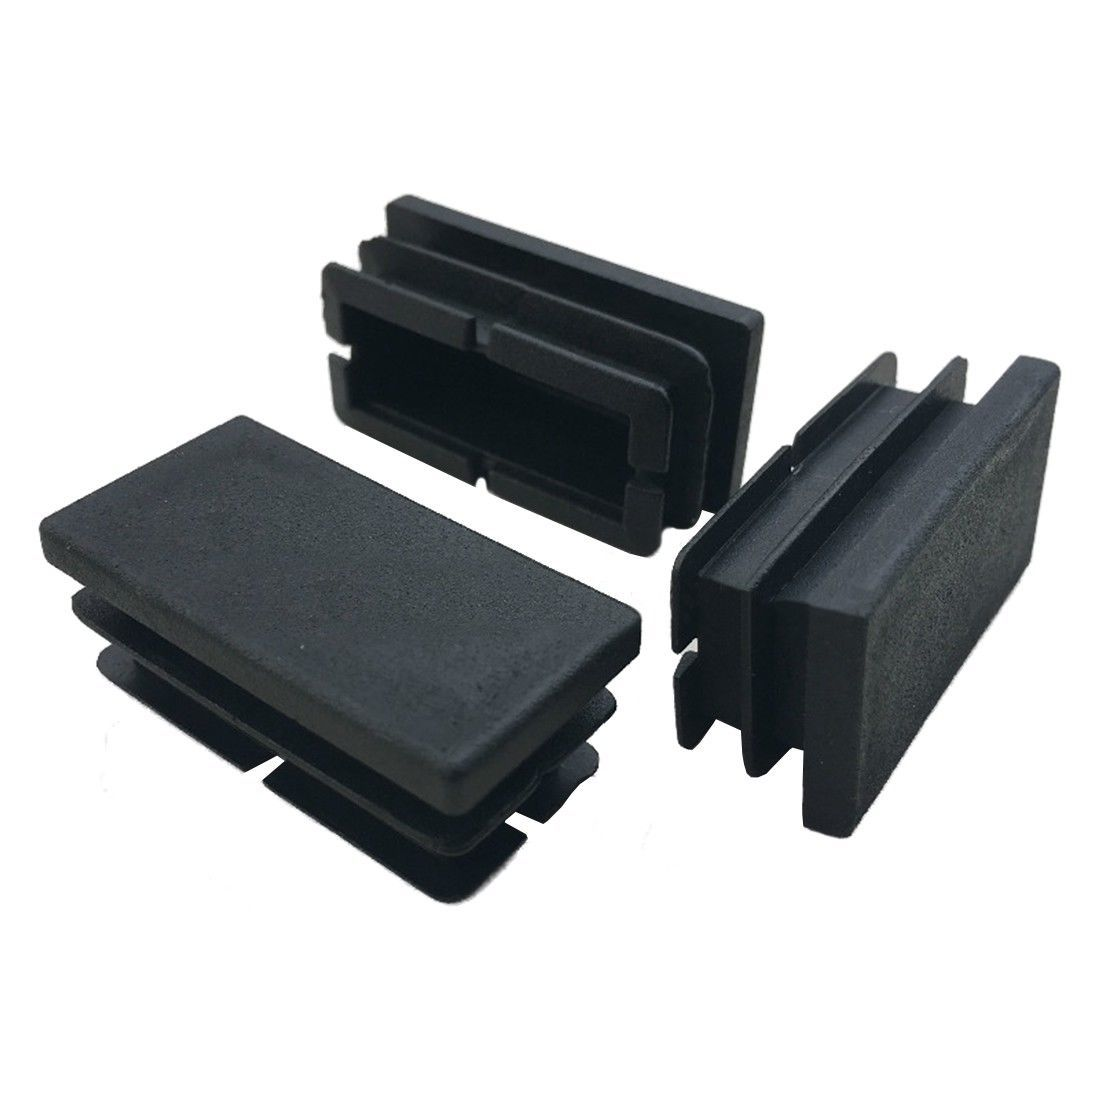 1 32 Aud 8 Pcs Black Plastic Rectangular Blanking End Caps Inserts 20mm X 40mm X3z8 O2k1 Eba Furniture Accessories Cool Things To Buy Rectangular